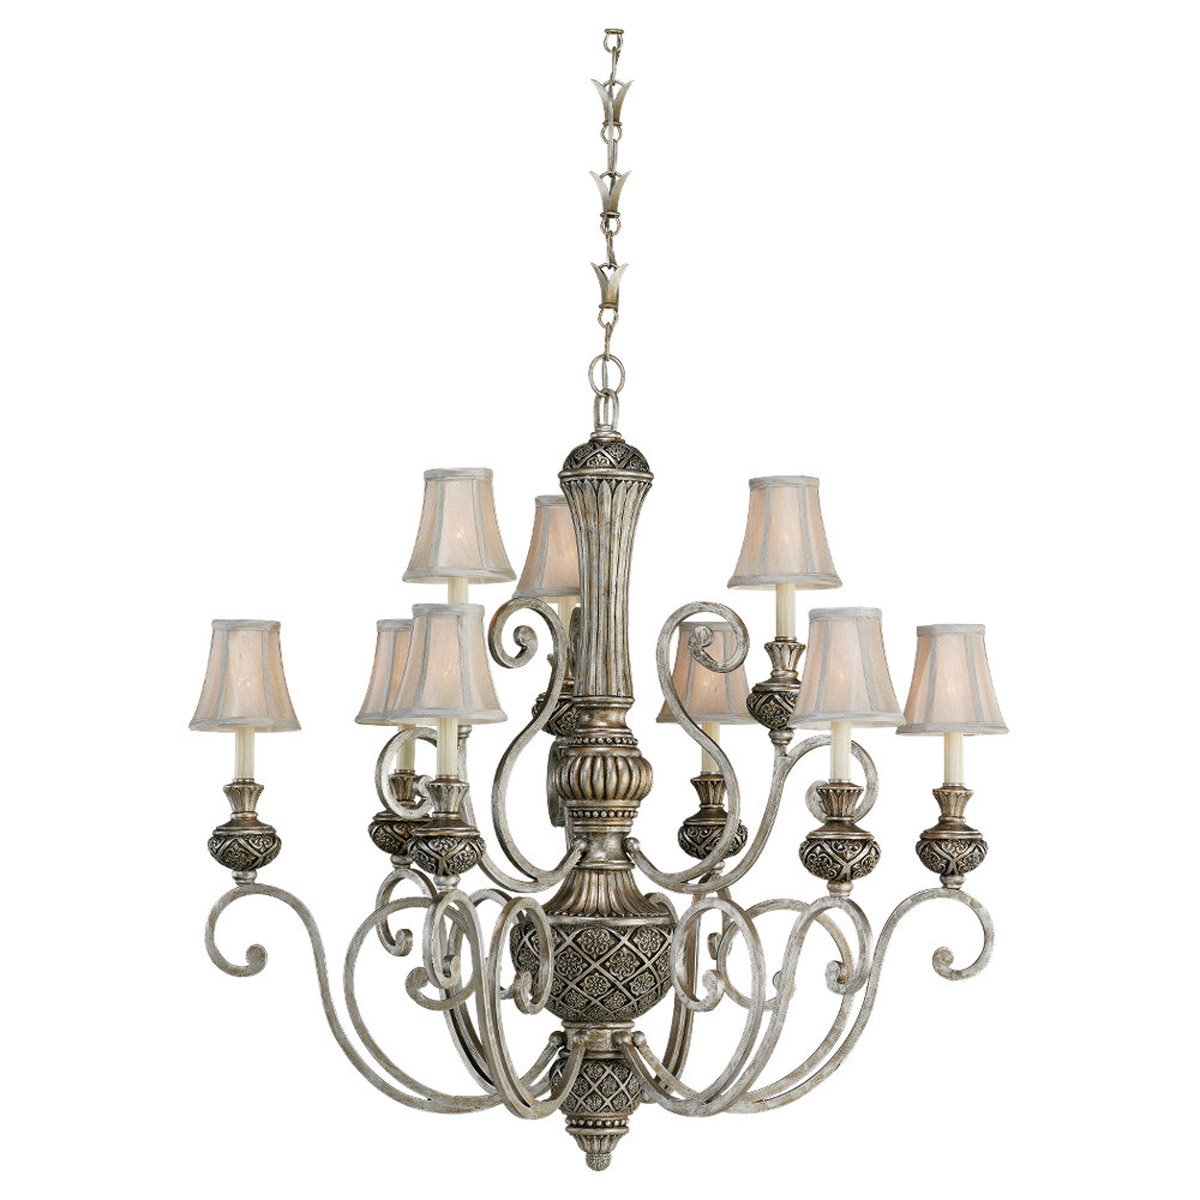 Sea Gull Lighting Highlands 9 Light Chandelier in Palladium 31252-824